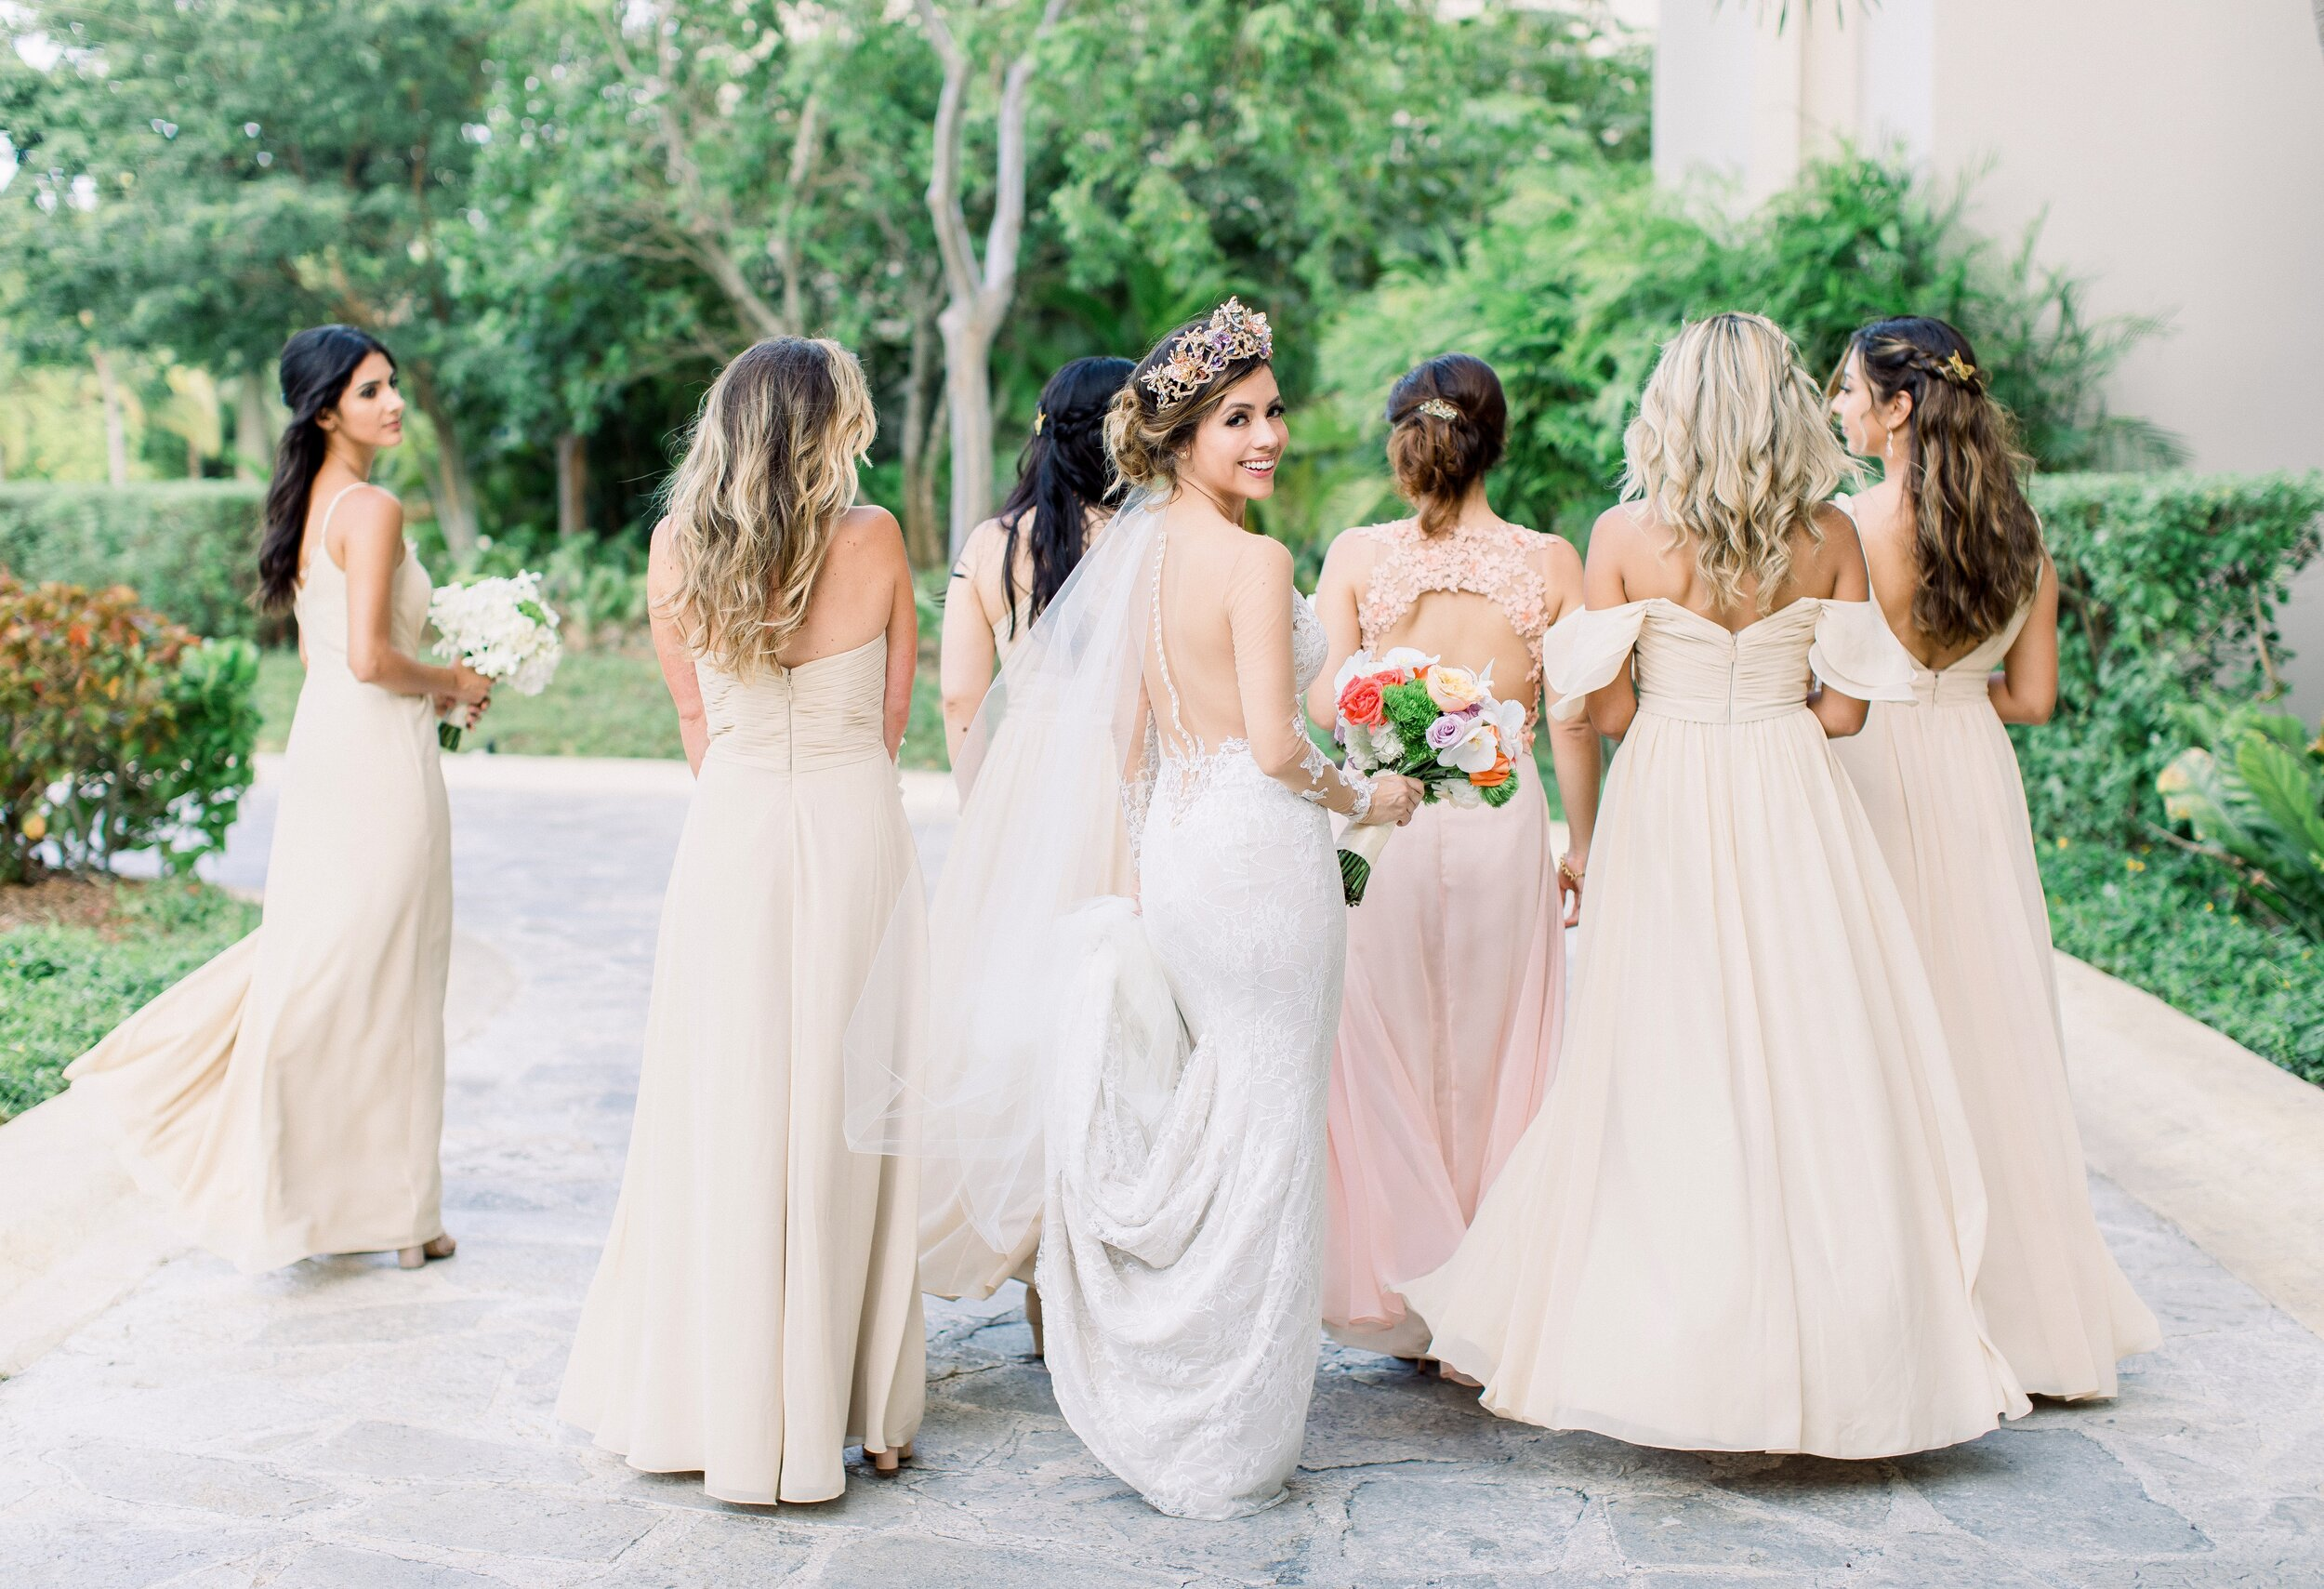 bride wears a lace wedding gown and bridesmaids wear blush bridesmaids dresses to mexico destination wedding